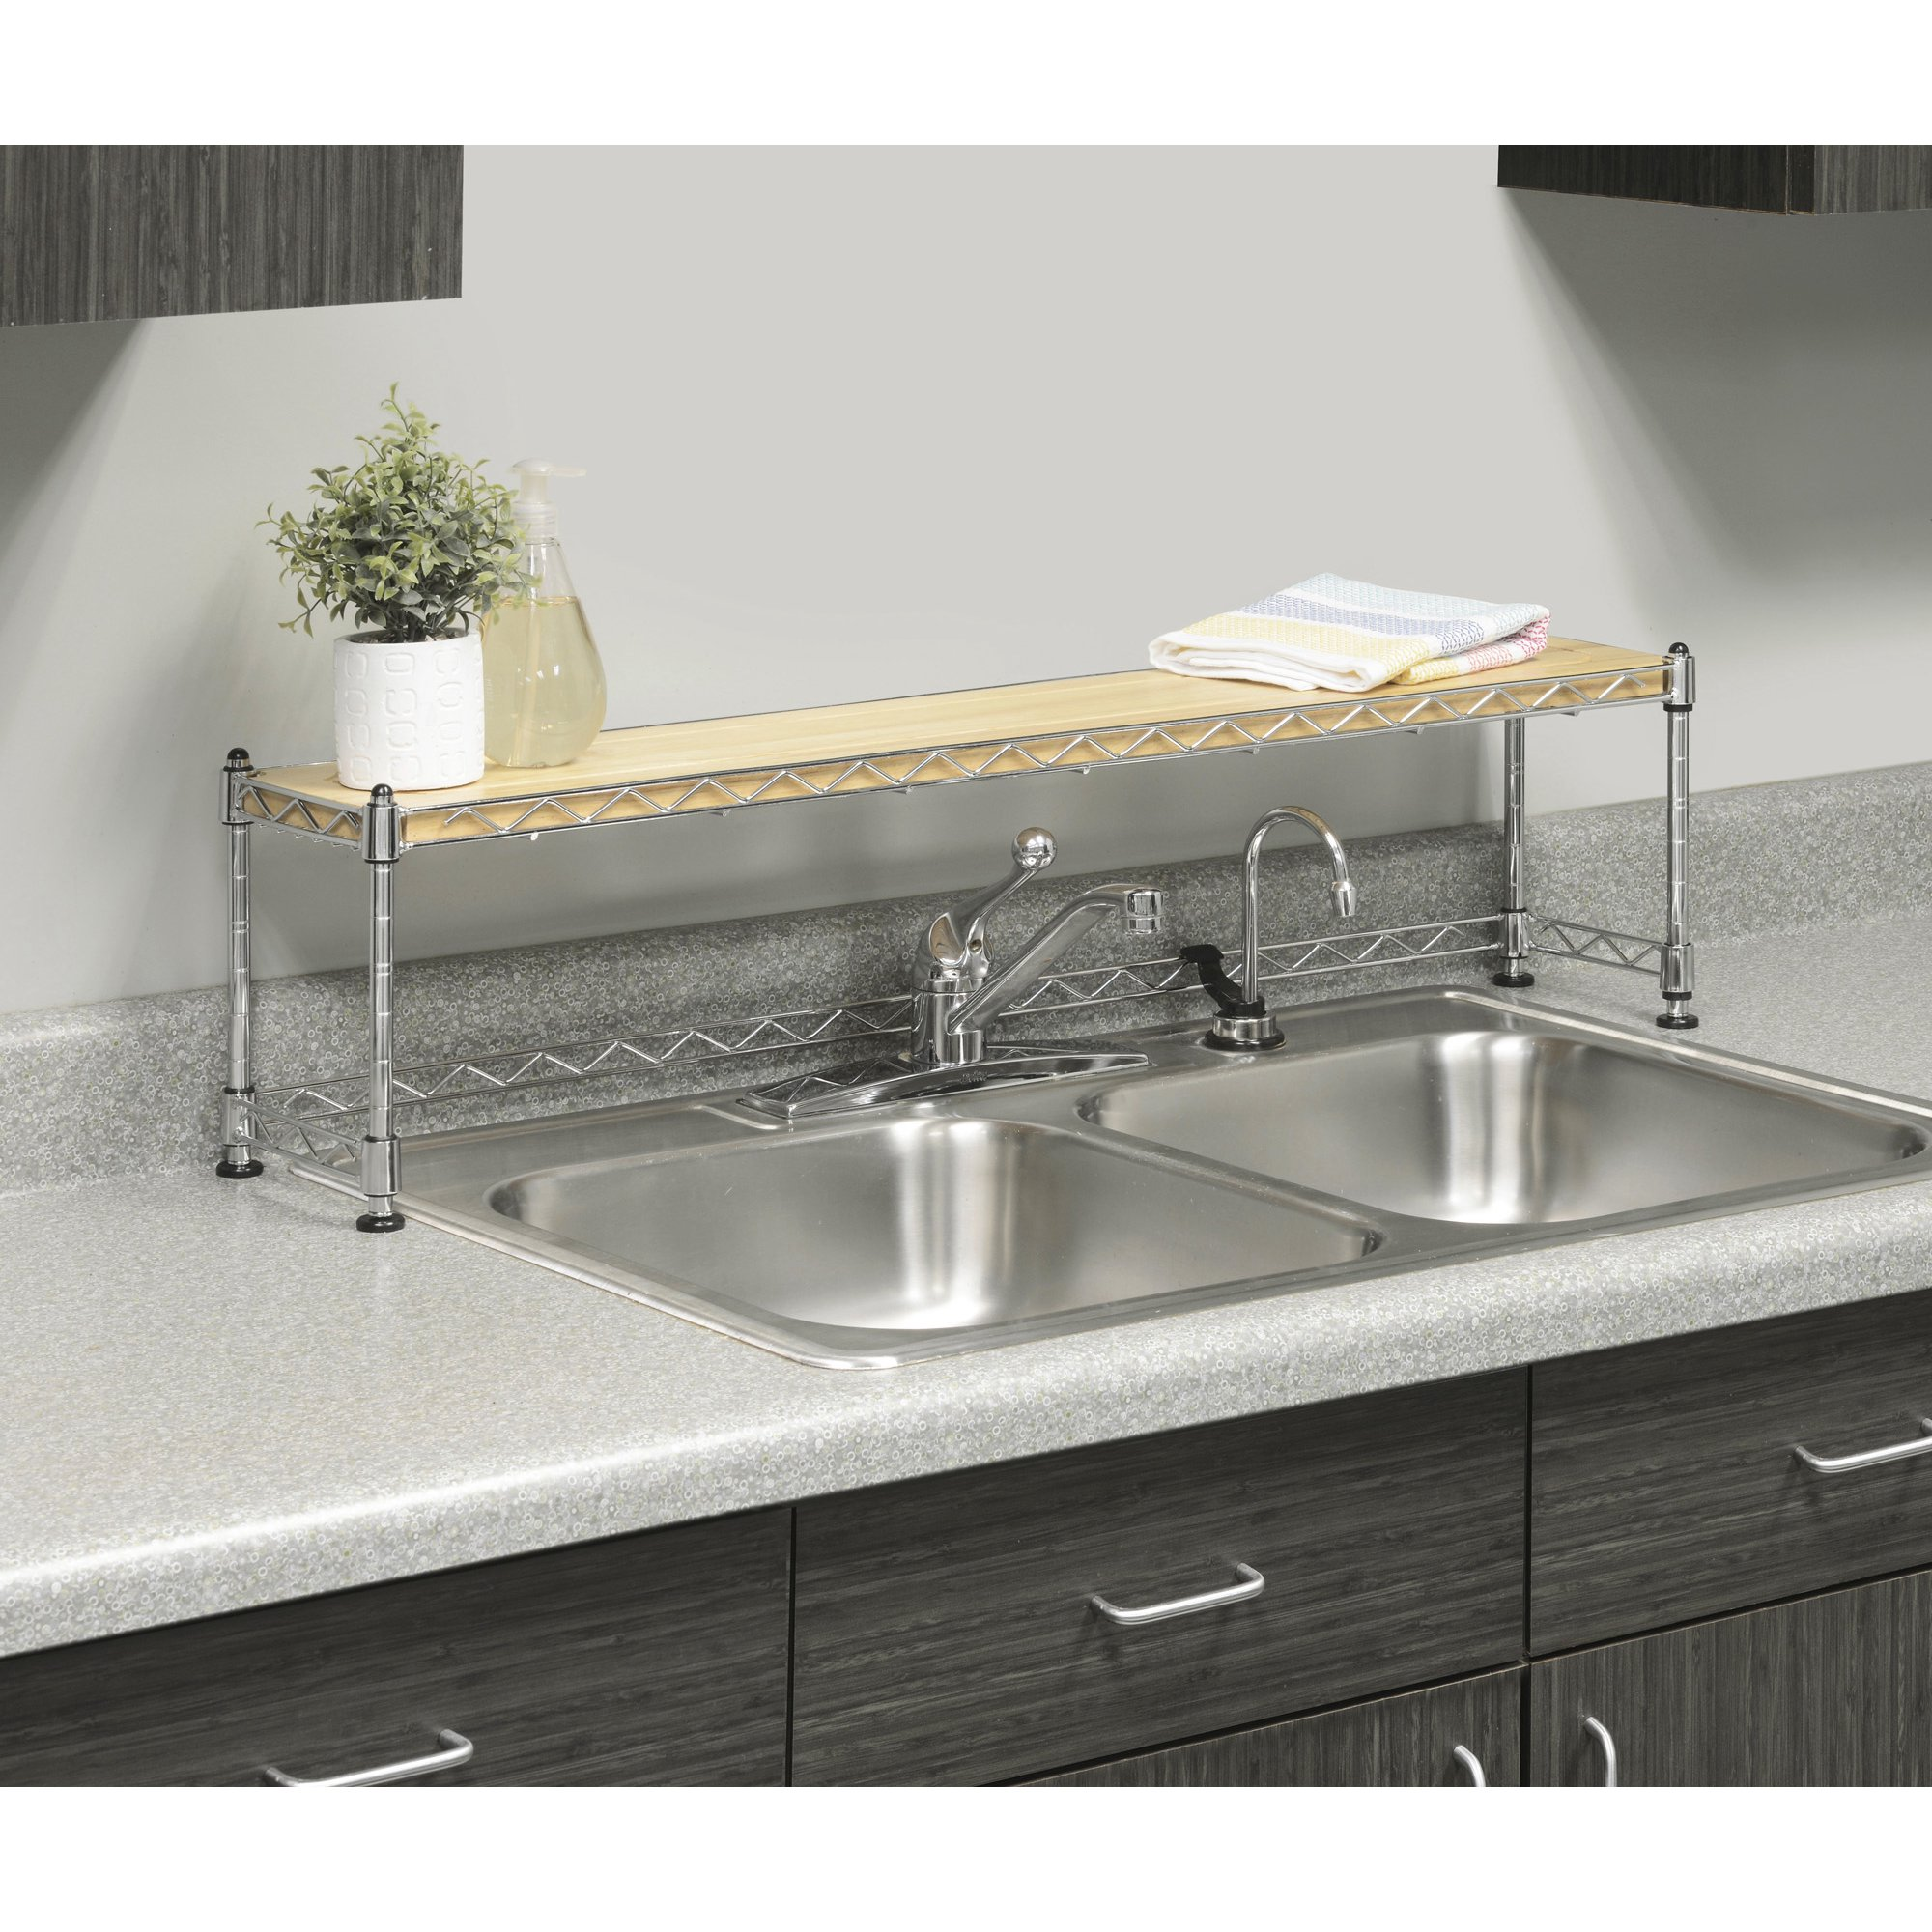 Whitmor Supreme Sink Shelf Wood & Chrome - Walmart.com